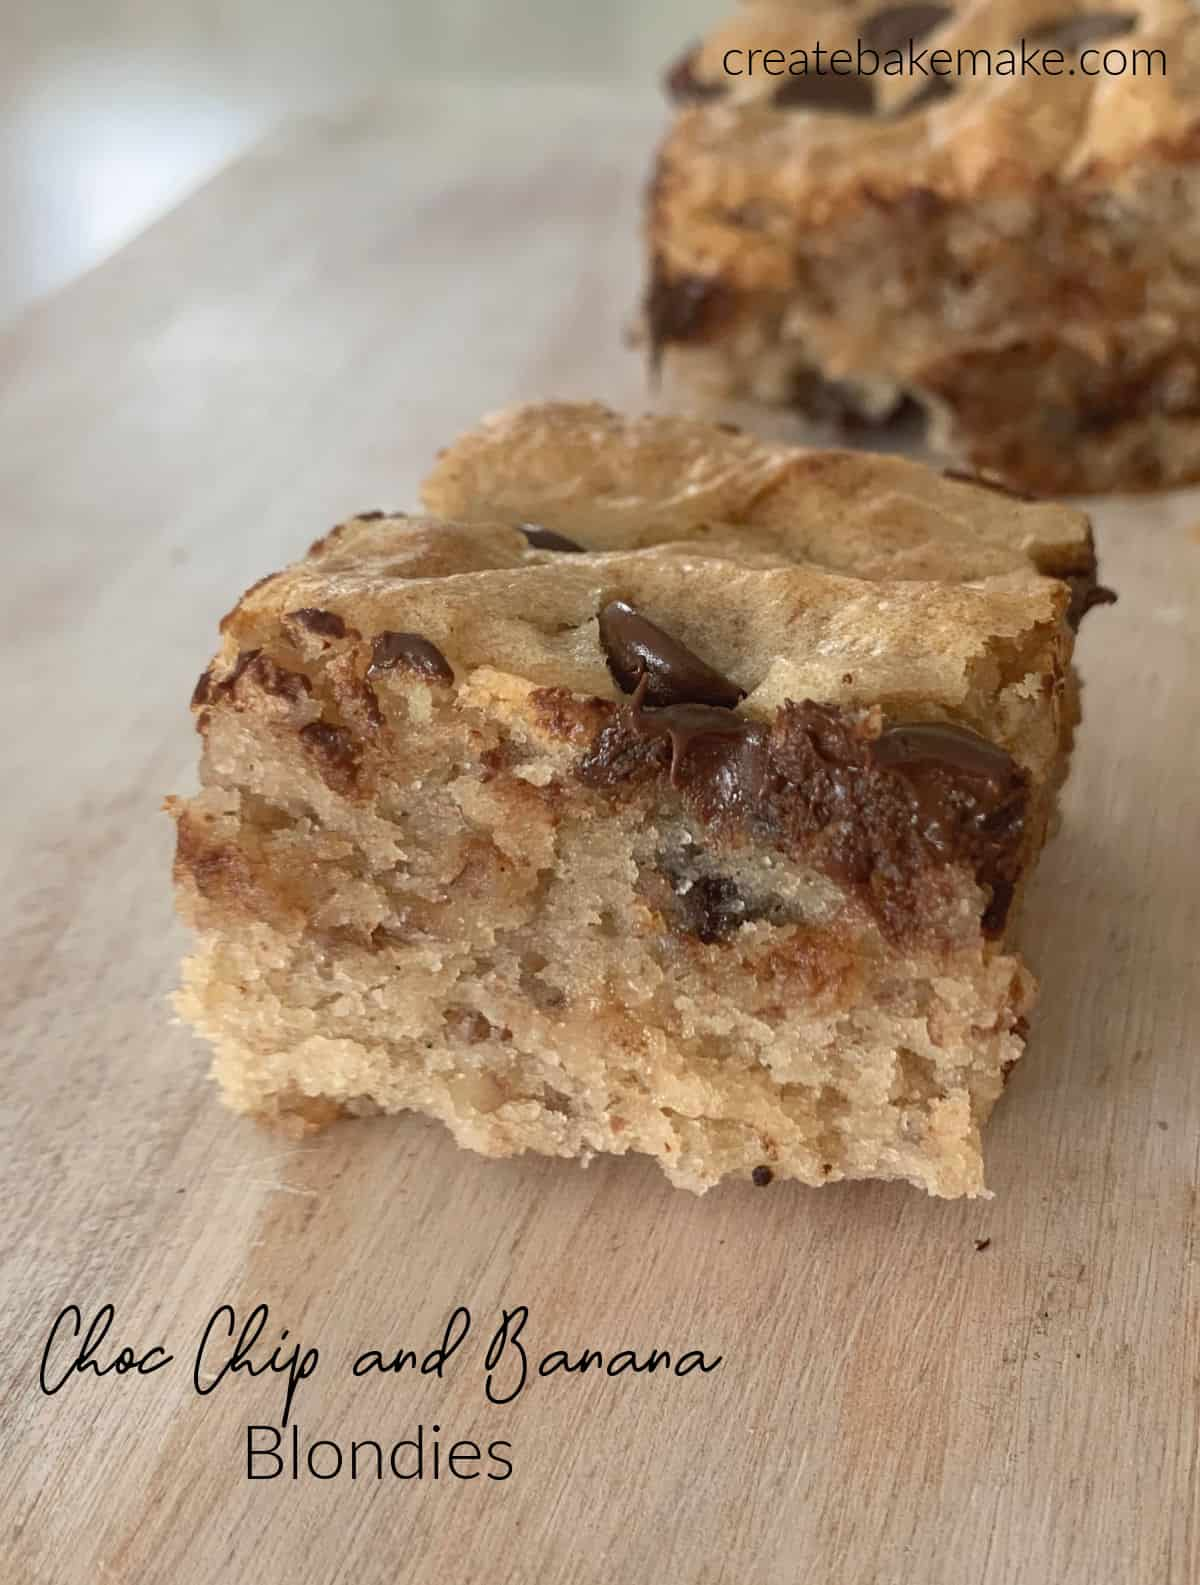 Side view of choc chip banana blondies